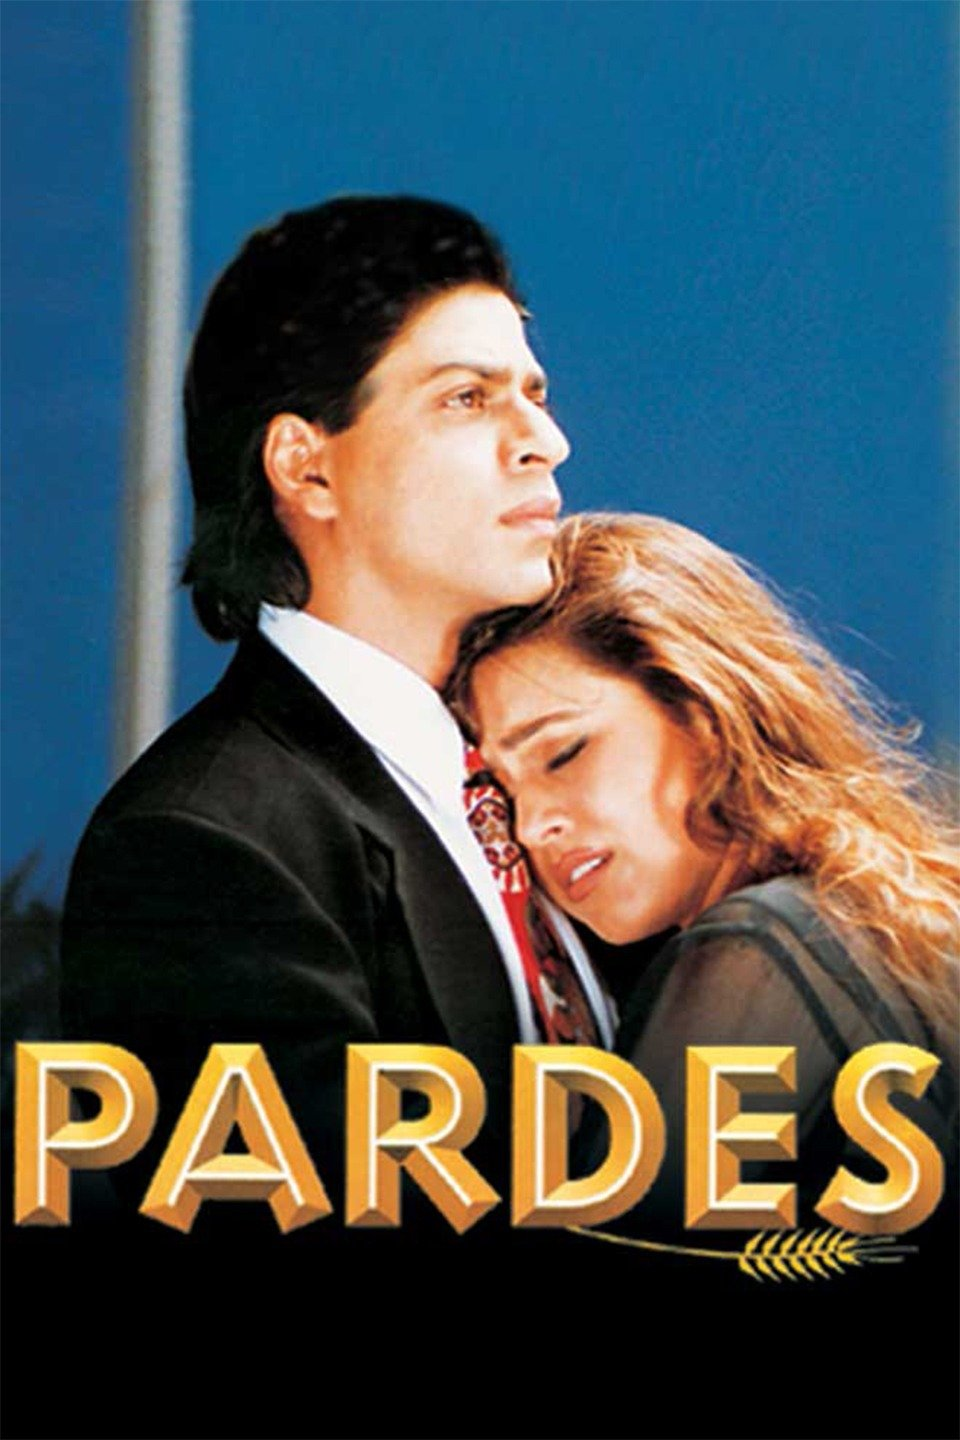 Pardes (1997) WEBDL 720p Hindi AVC ACC - LatestHDMovies